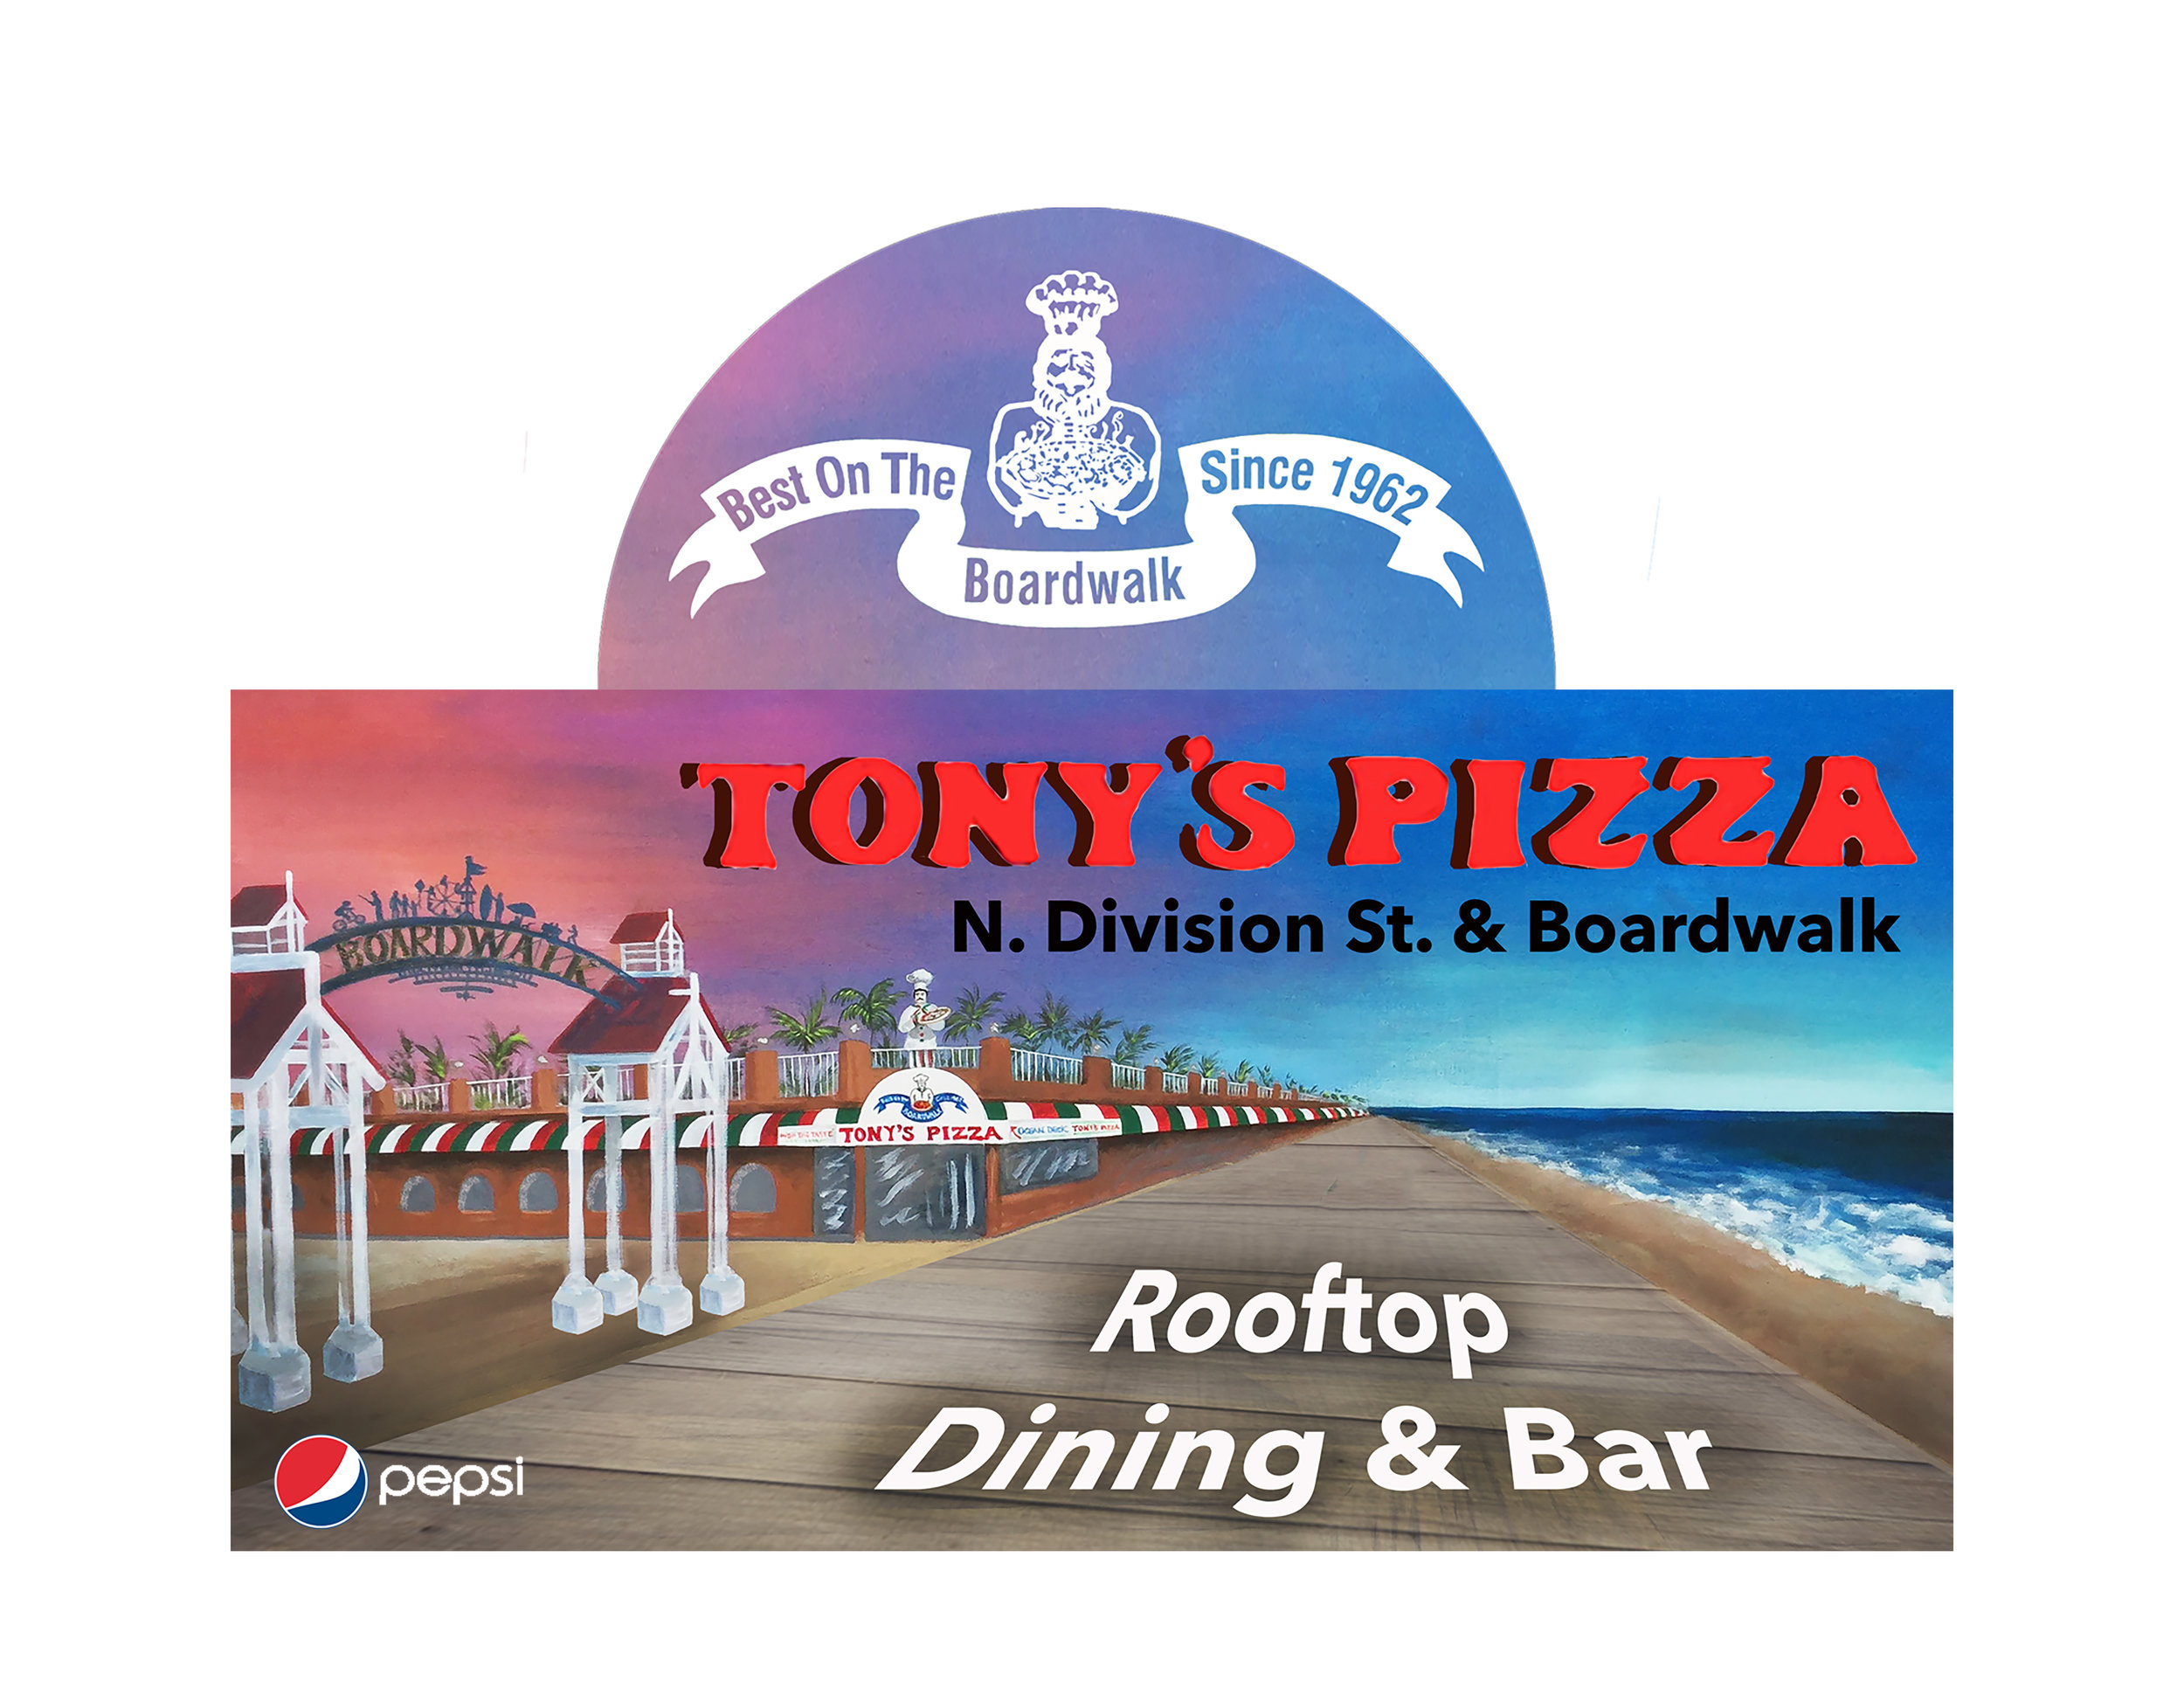 Tony's Pizza Rt 50 Billboard Design